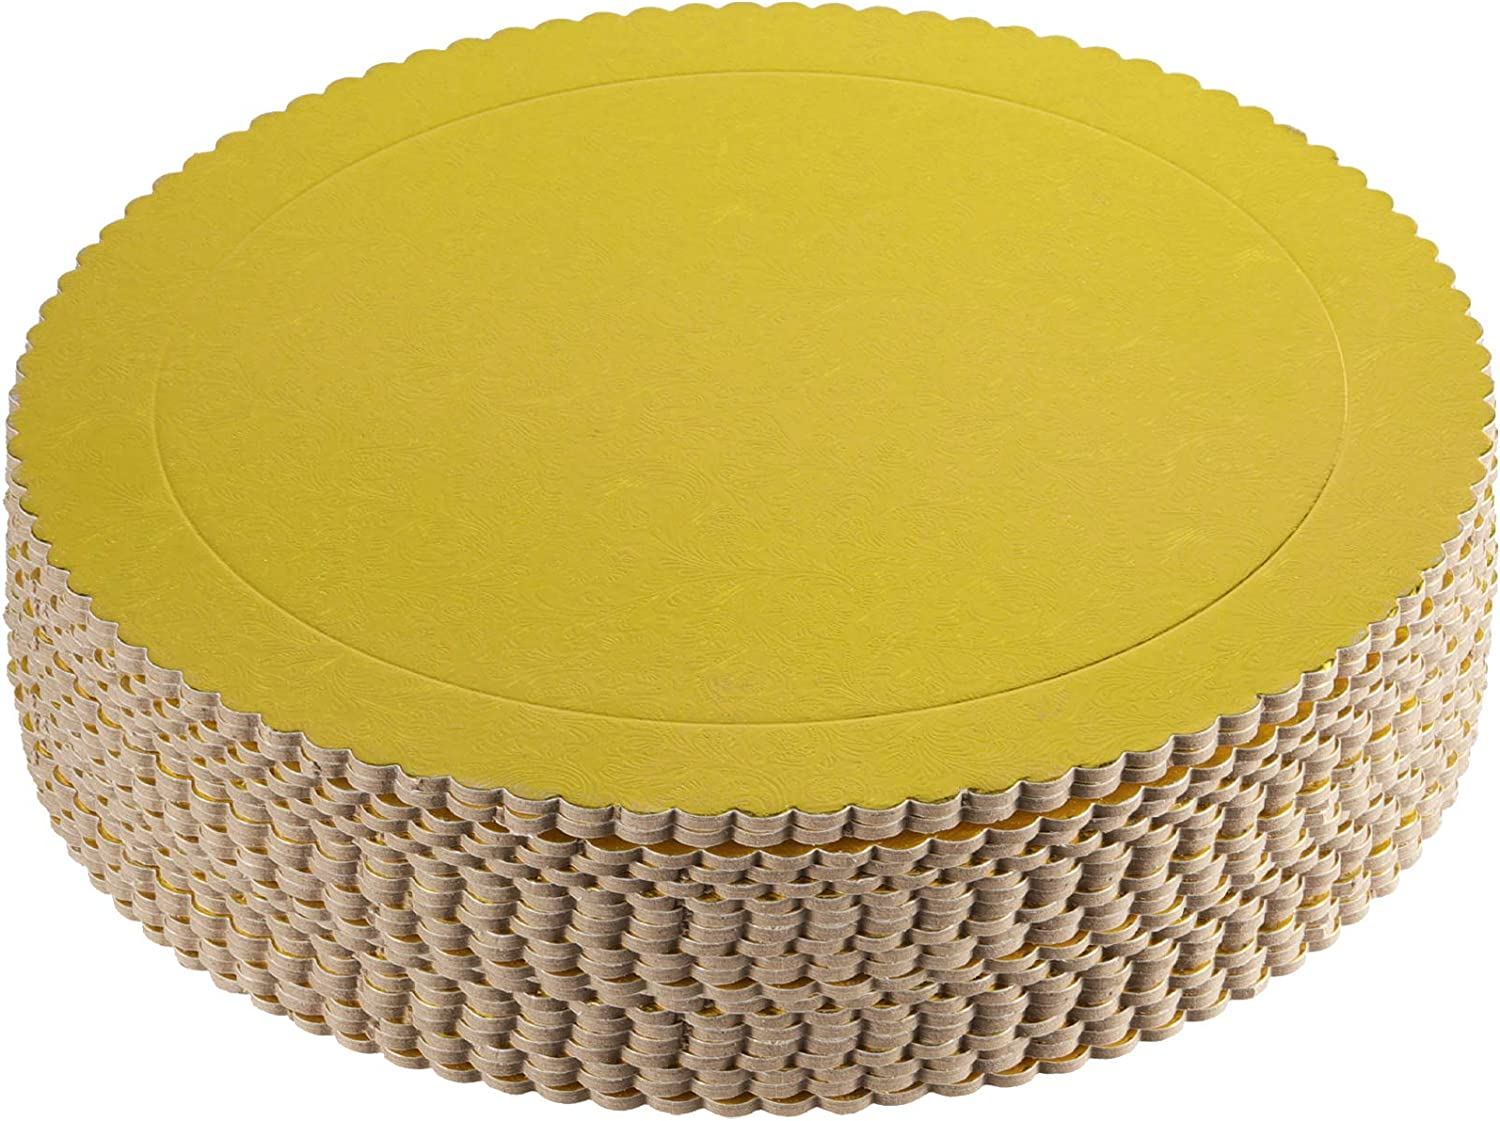 ZEONHAK 20 Pack 12 Inches Cake Boards, Round Cake Circles, Cake Base, Food Grade Gold Laminating Greaseproof Disposable Reusable Cardboard Cake Drum Pizza Tart Tray